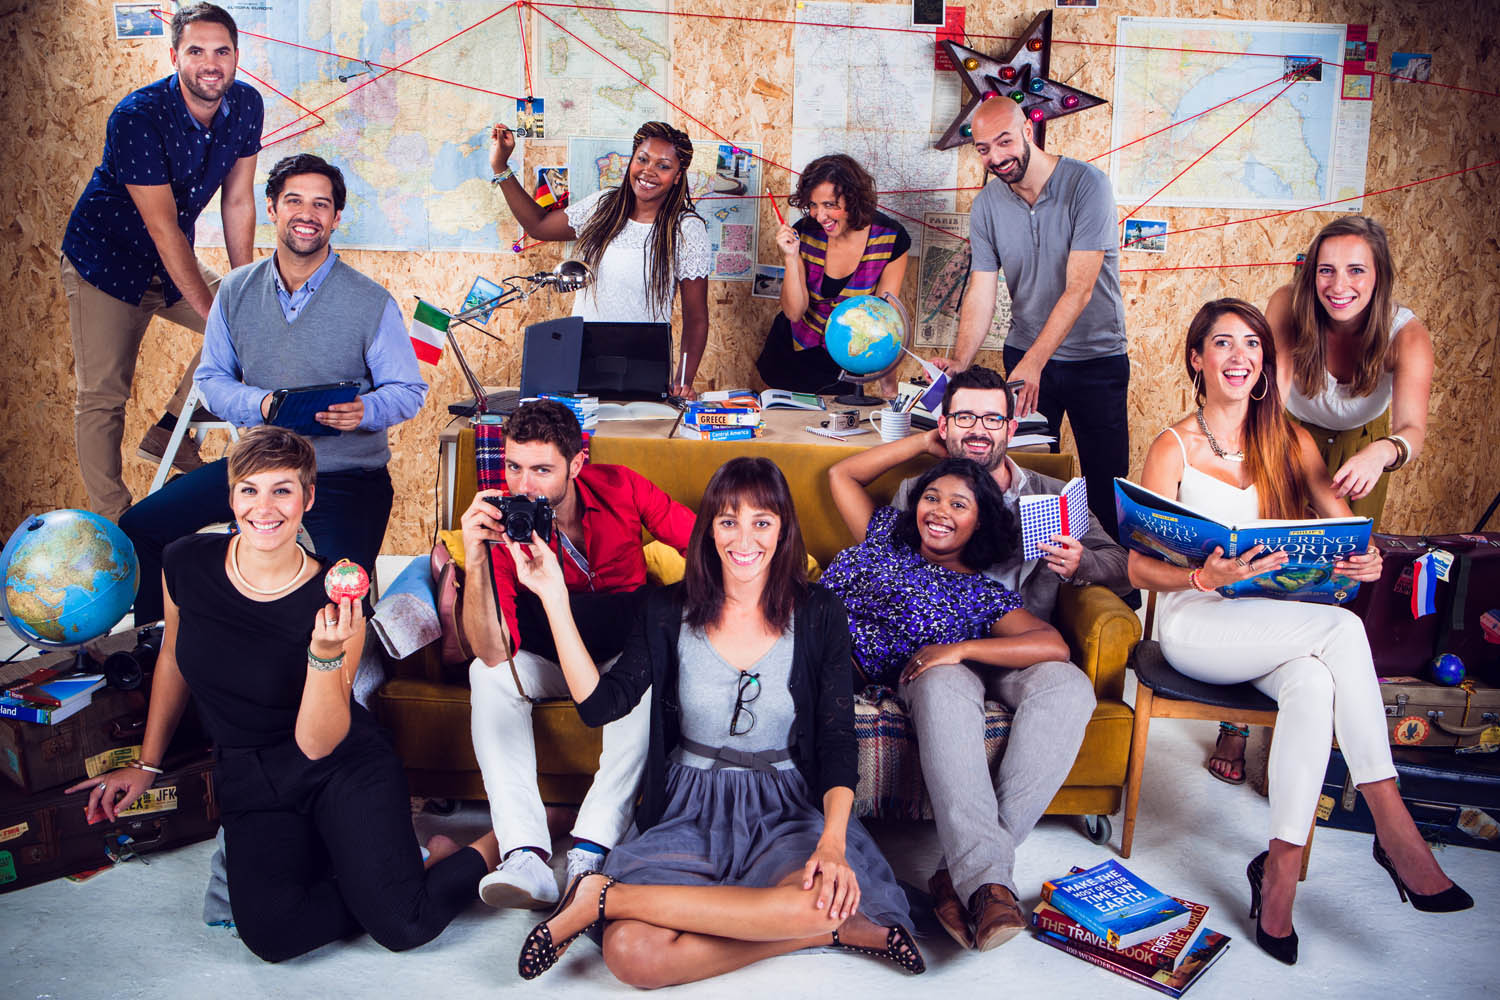 Another group photo for Expedia showing everyone as world travellers.